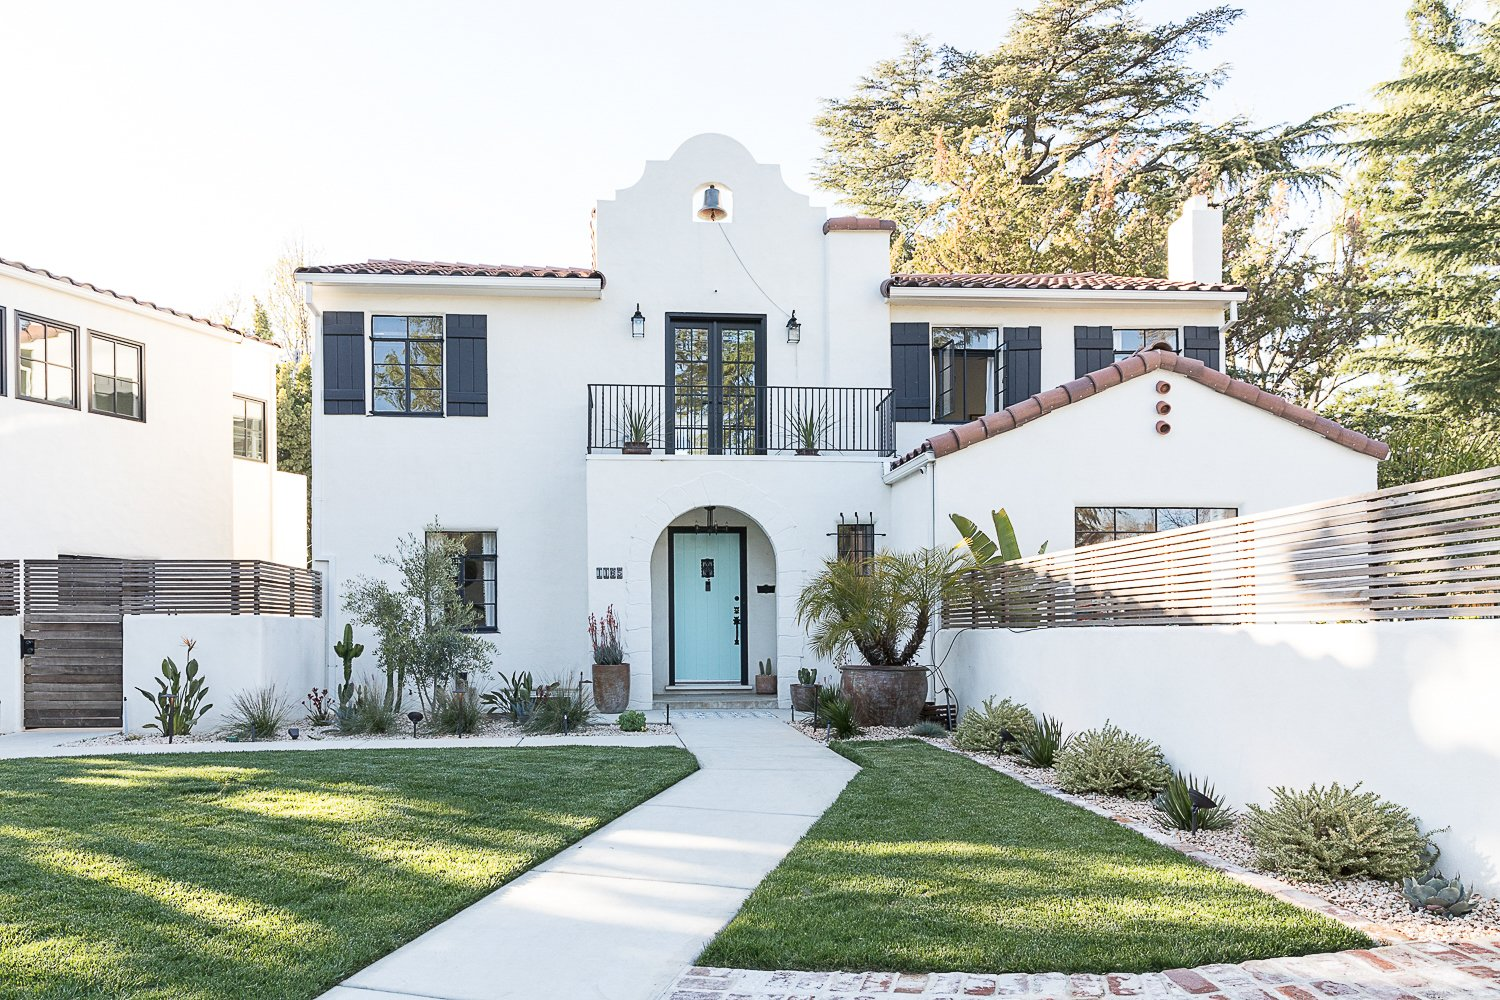 Spanish Revival by Colossus Mfg Exterior